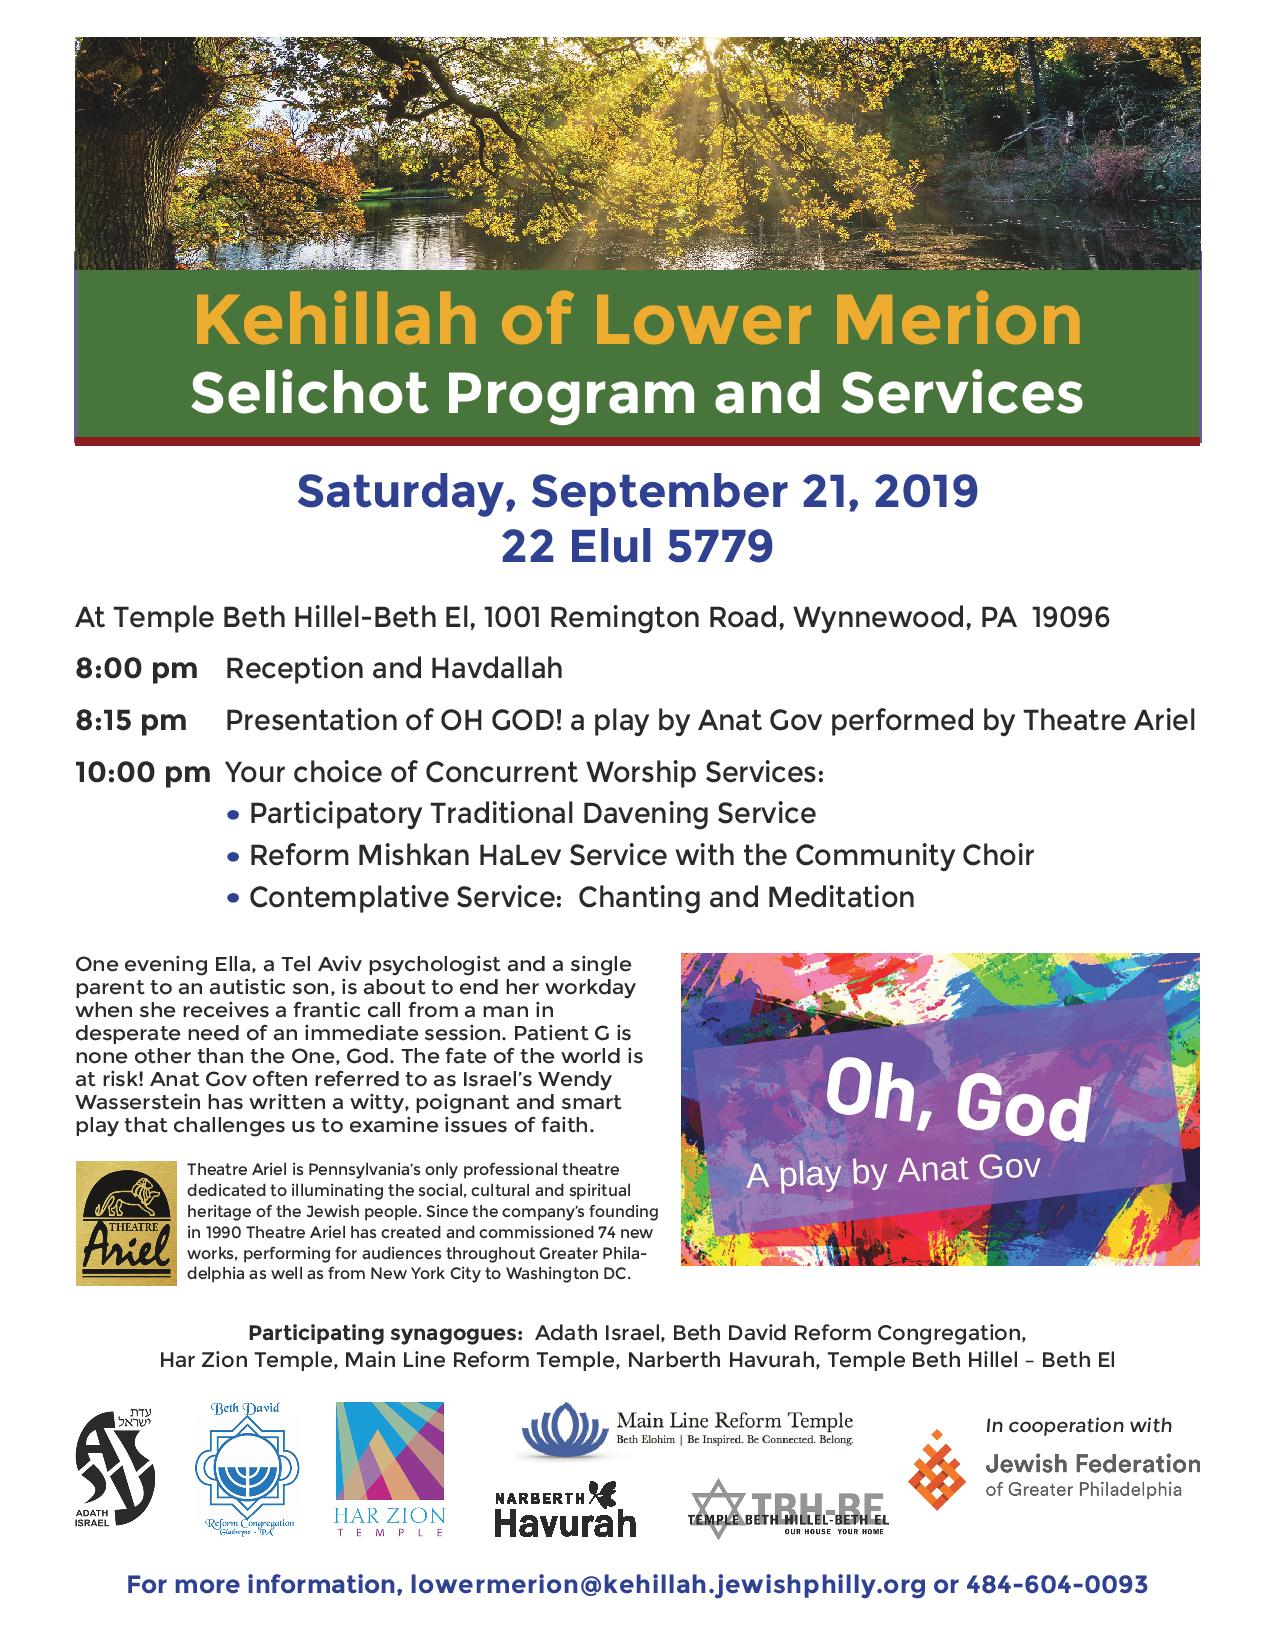 Selichot Program and Services with Kehillah of Lower Merion @ Temple Beth Hillel-Beth El